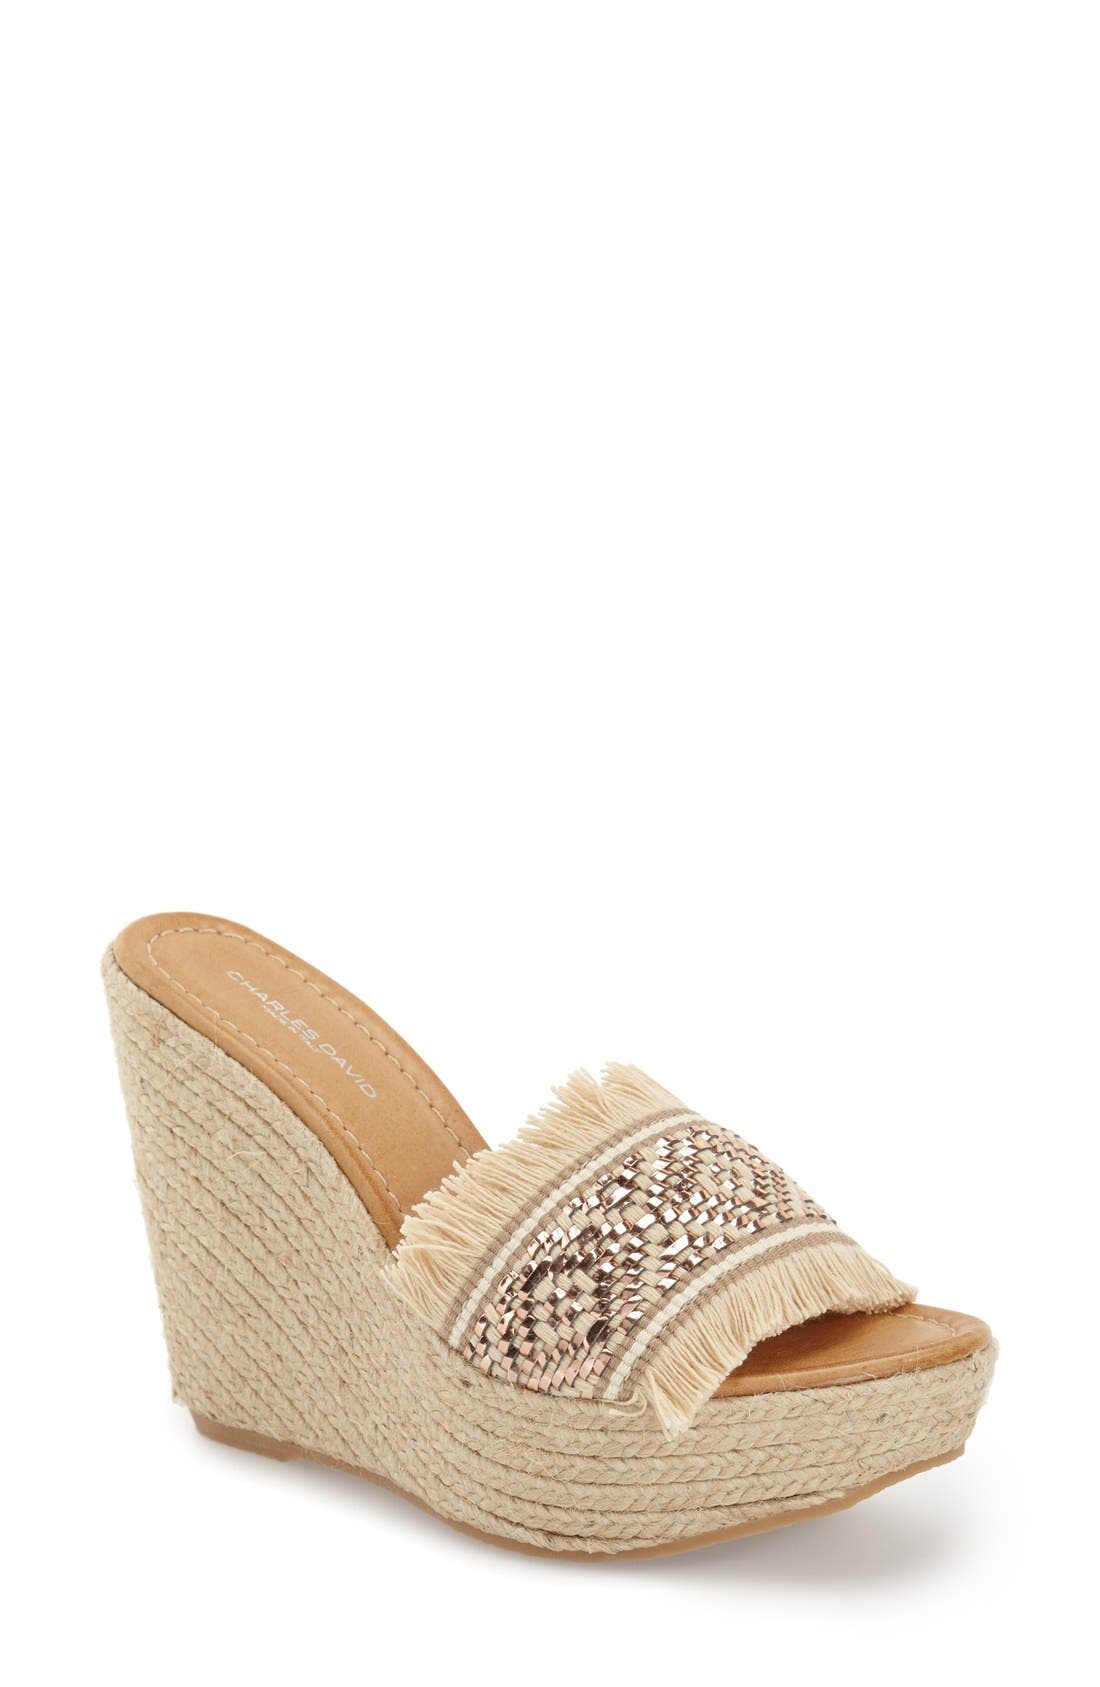 Alternate Image 1 Selected - Charles David 'Dana' Fringe Wedge Sandal (Women)